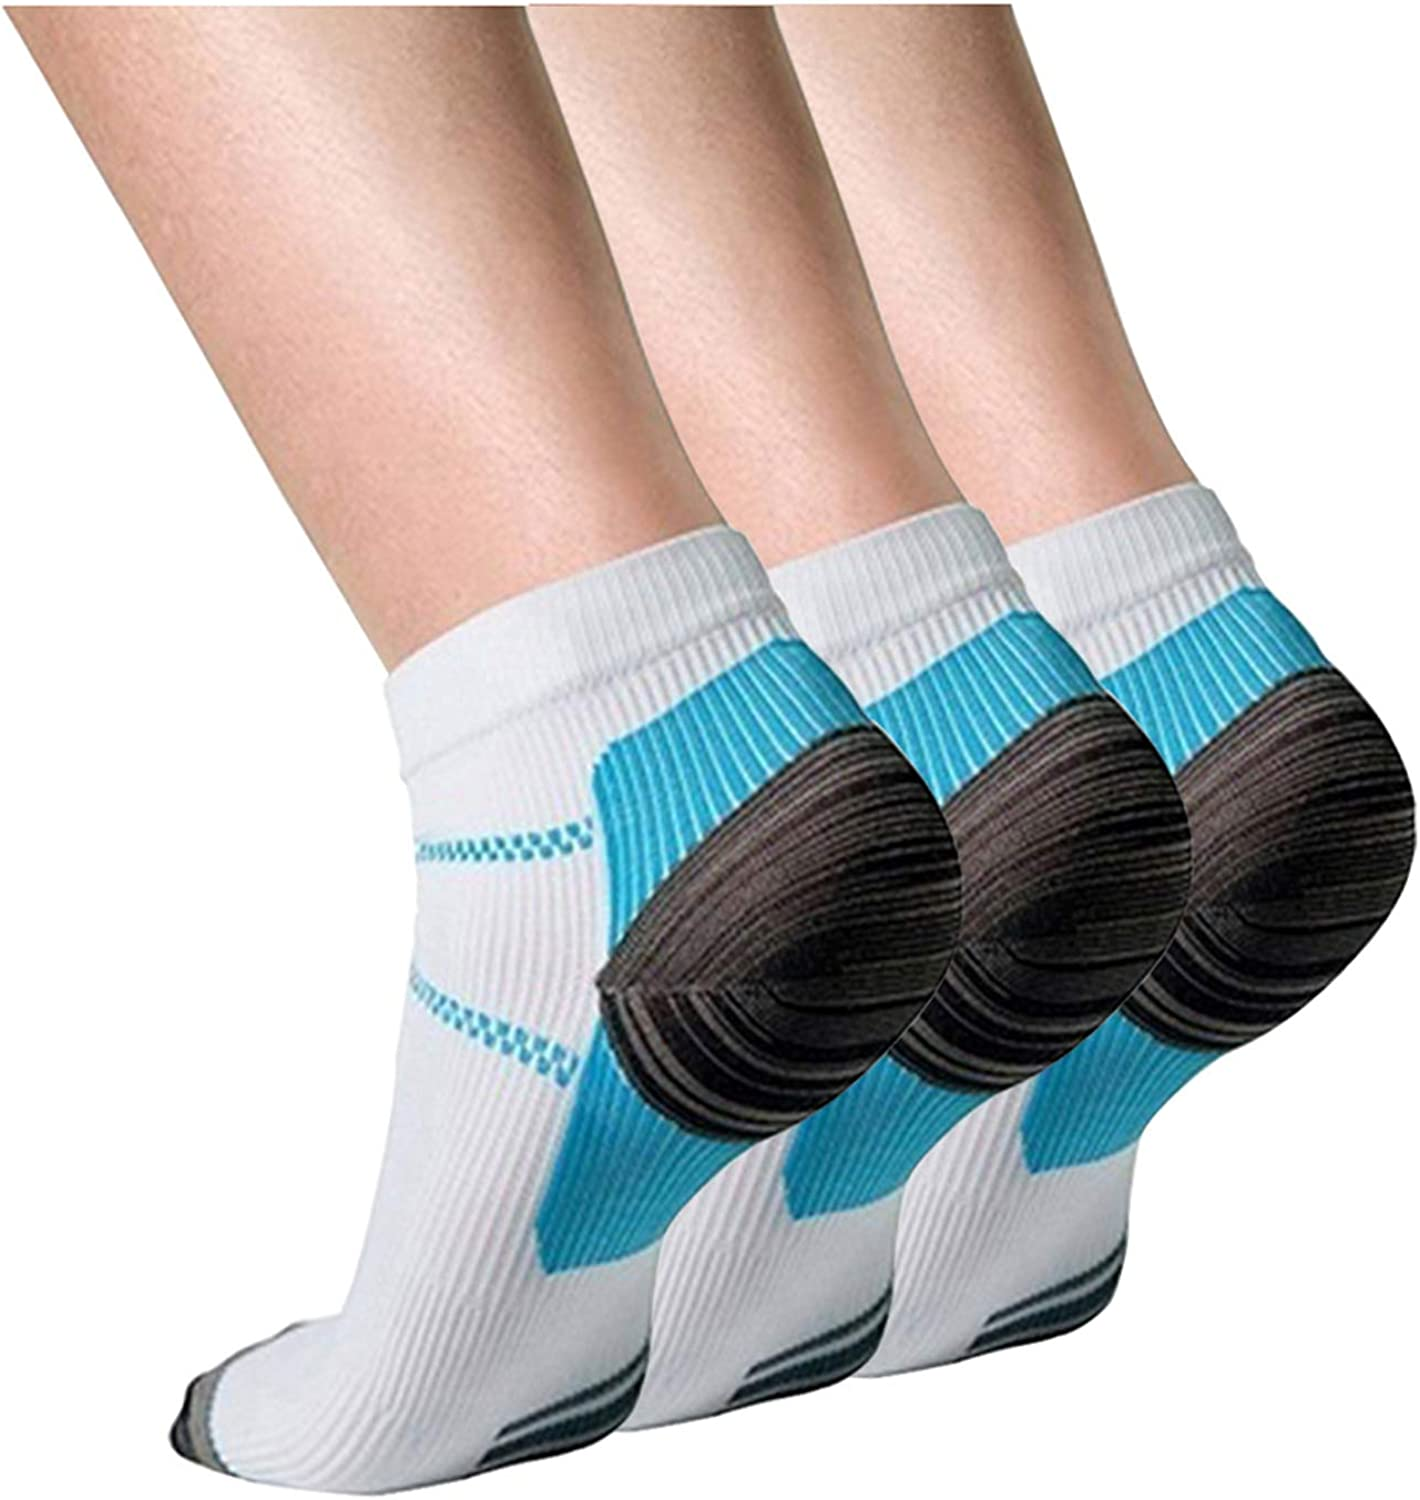 Compression Socks Women and Mens Socks 3/7 Pairs-Fit for Running,Athletic,Cycling,Travel& Medical